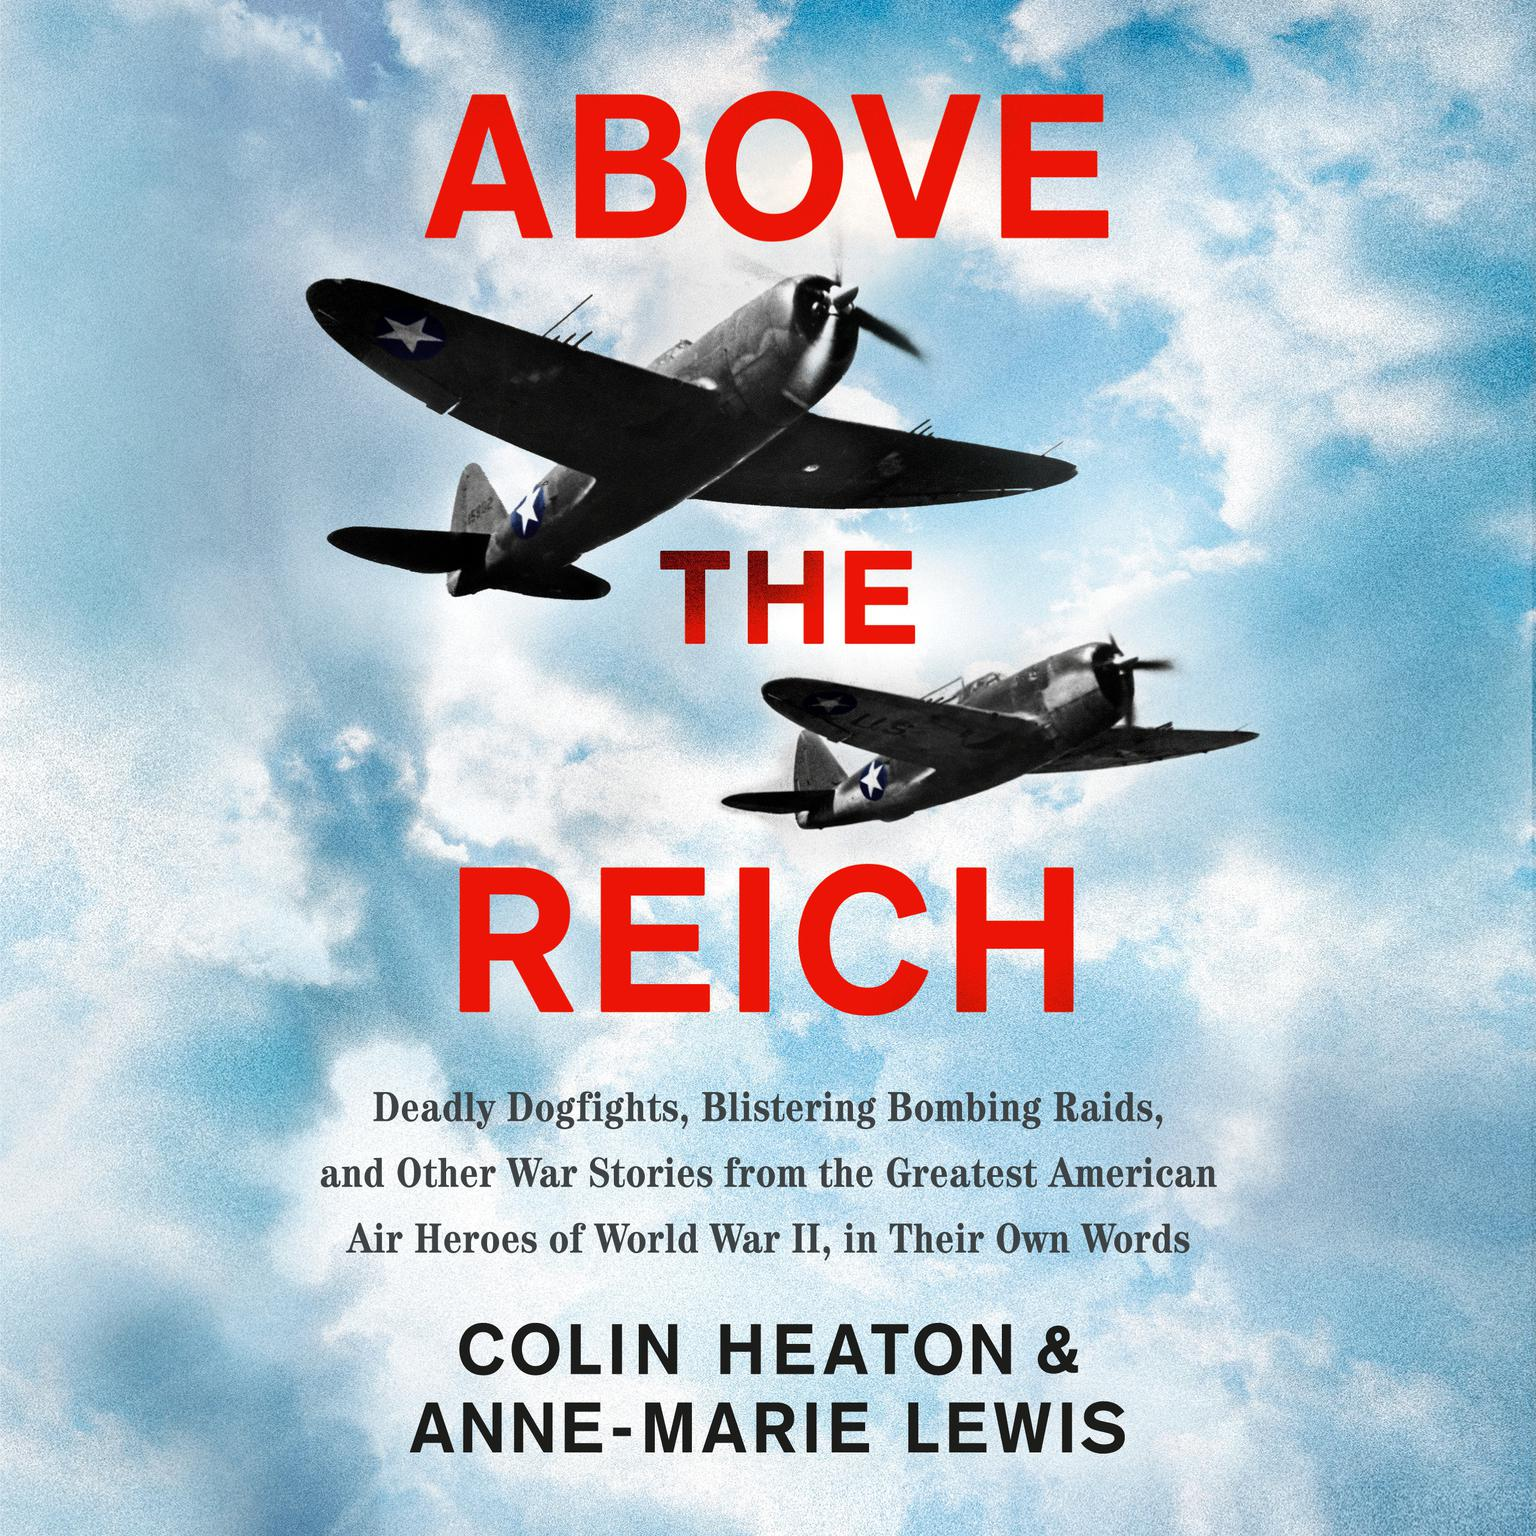 Above the Reich: Deadly Dogfights, Blistering Bombing Raids, and Other War Stories from the Greatest American Air Heroes of World War II, in Their Own Words Audiobook, by Anne-Marie Lewis